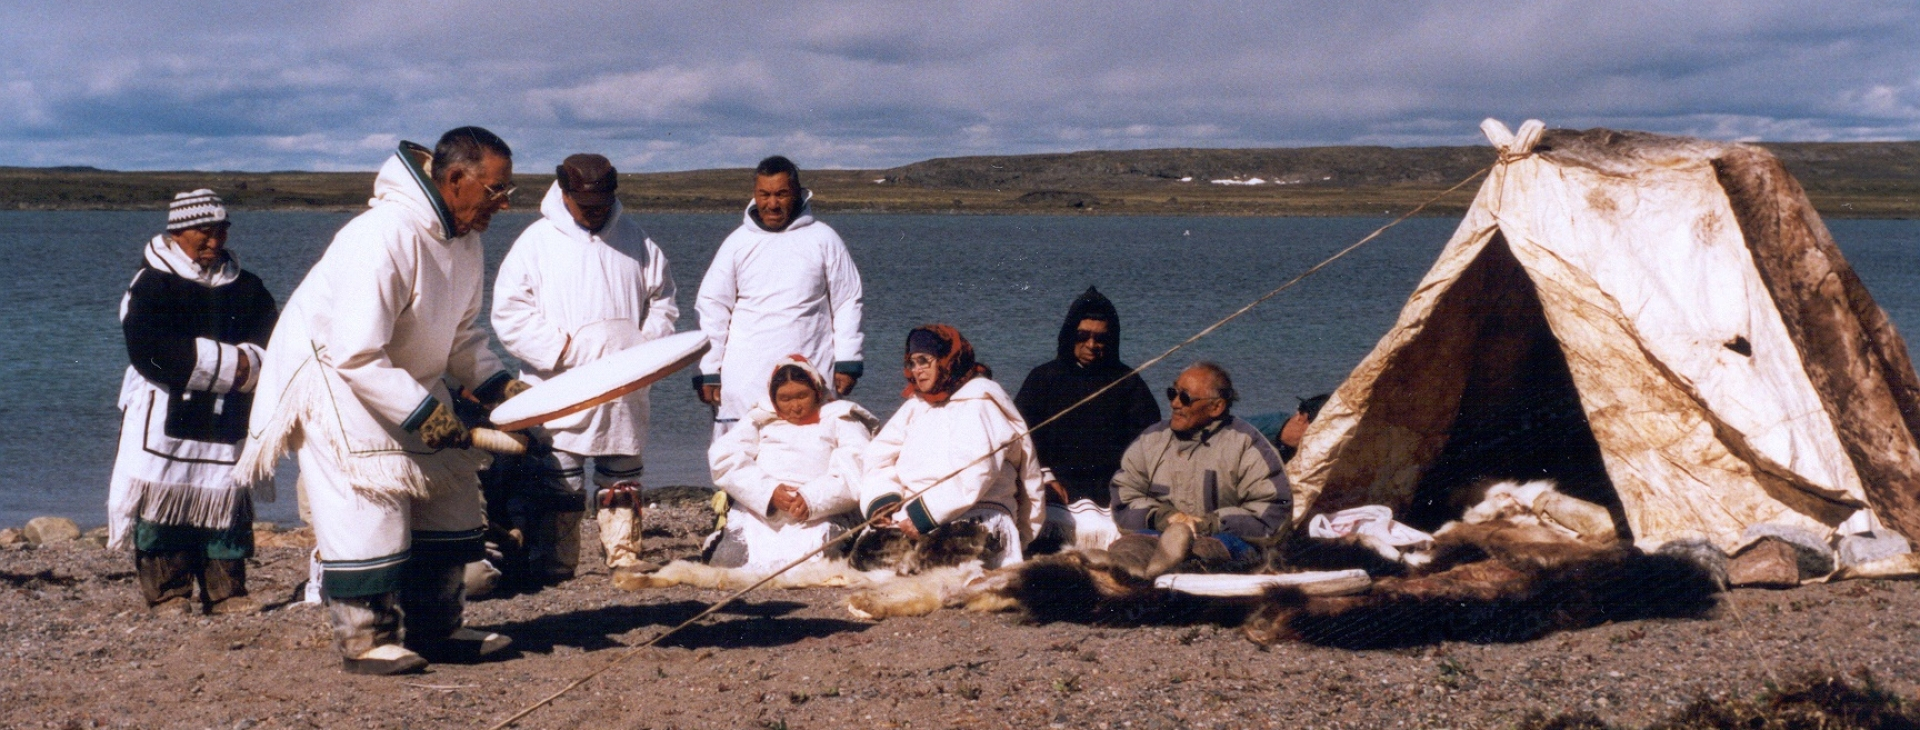 Fréderic Laugrand anthropologie inuit